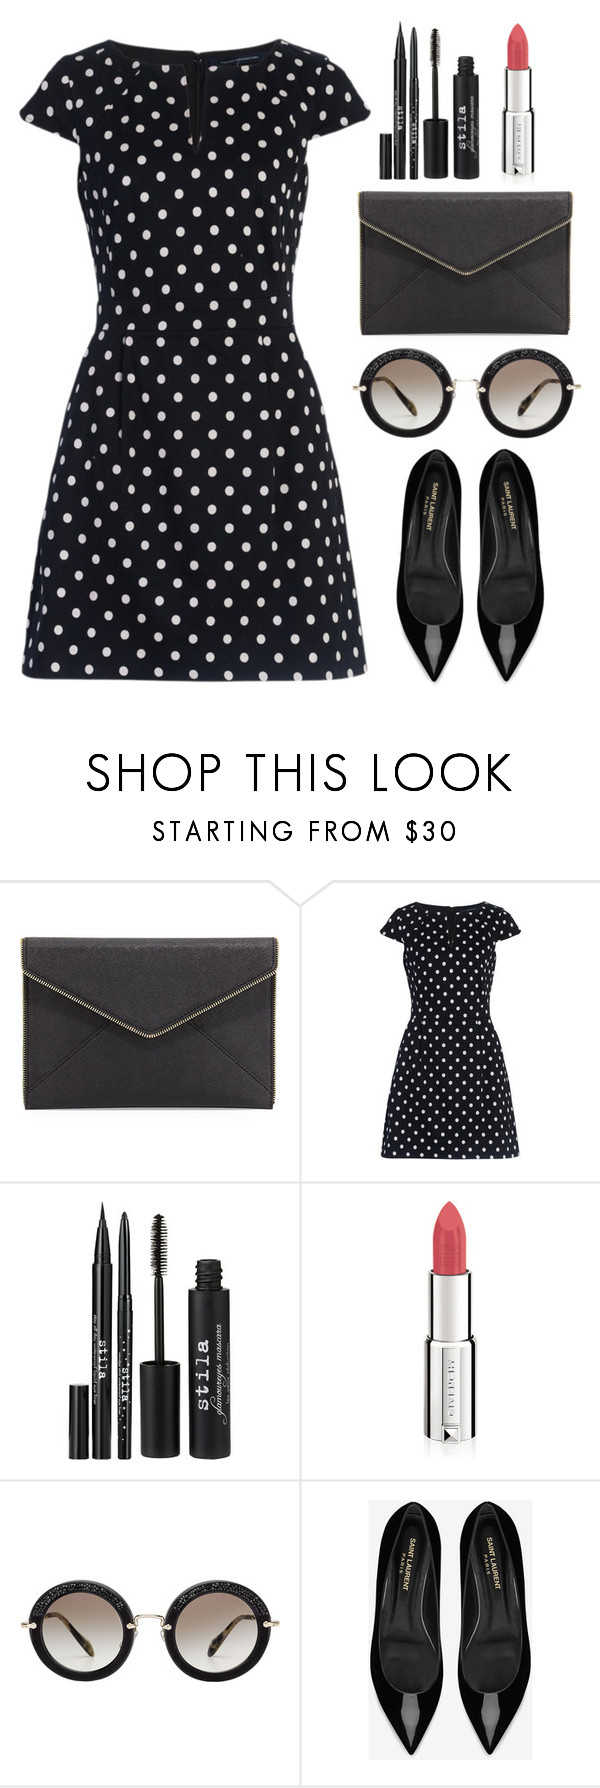 """Pretty in black"" by longarina ❤ liked on Polyvore featuring Rebecca Minkoff, French Connection, Stila, Givenchy, Miu Miu and Yves Saint Laurent"